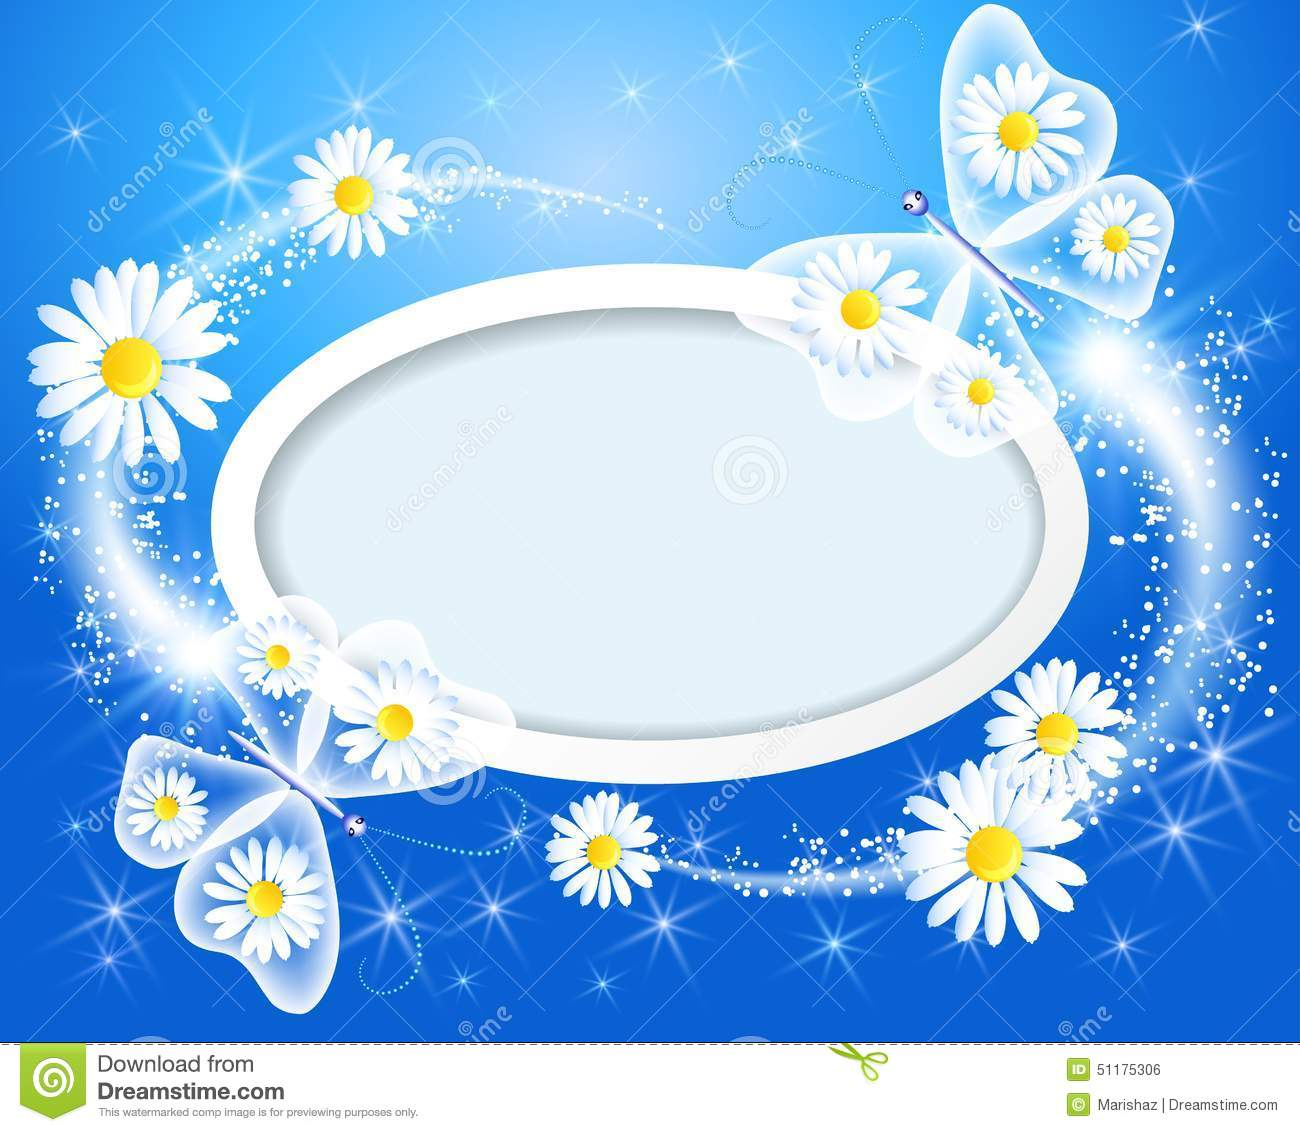 Butterfly with daisy and frame